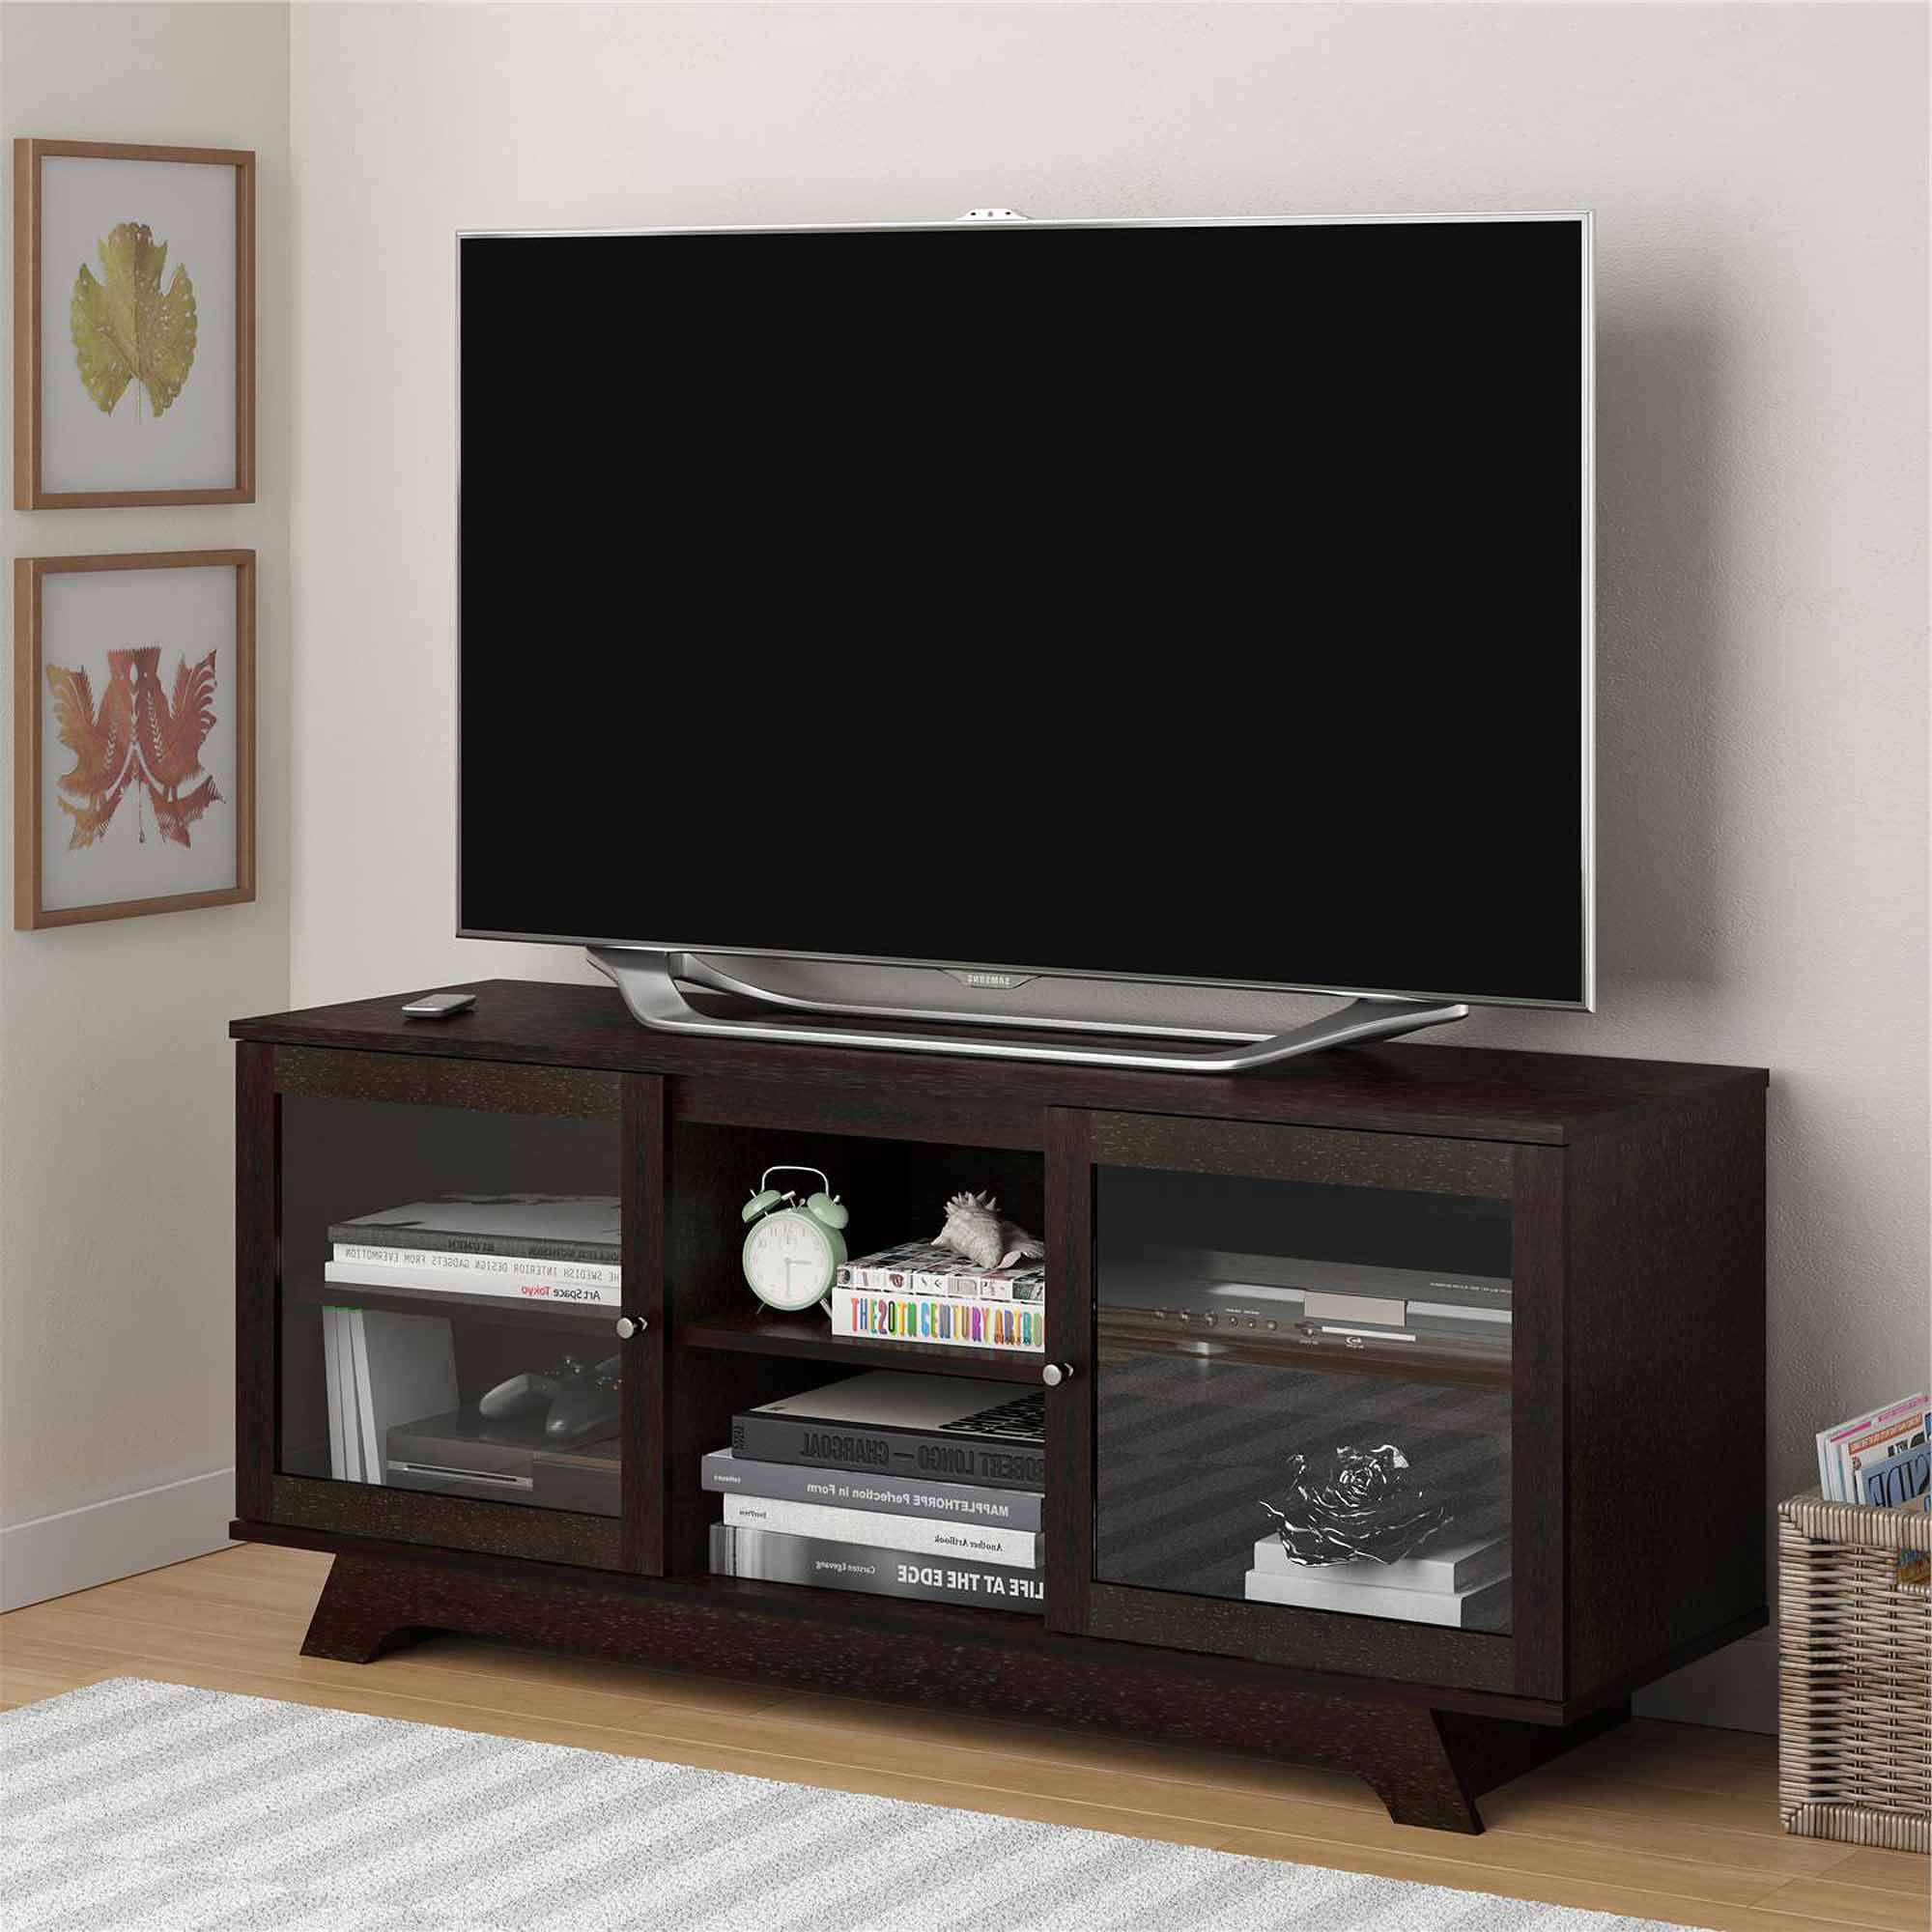 Tv Stands & Entertainment Centers – Walmart Intended For Wooden Tv Stands For 50 Inch Tv (View 6 of 15)